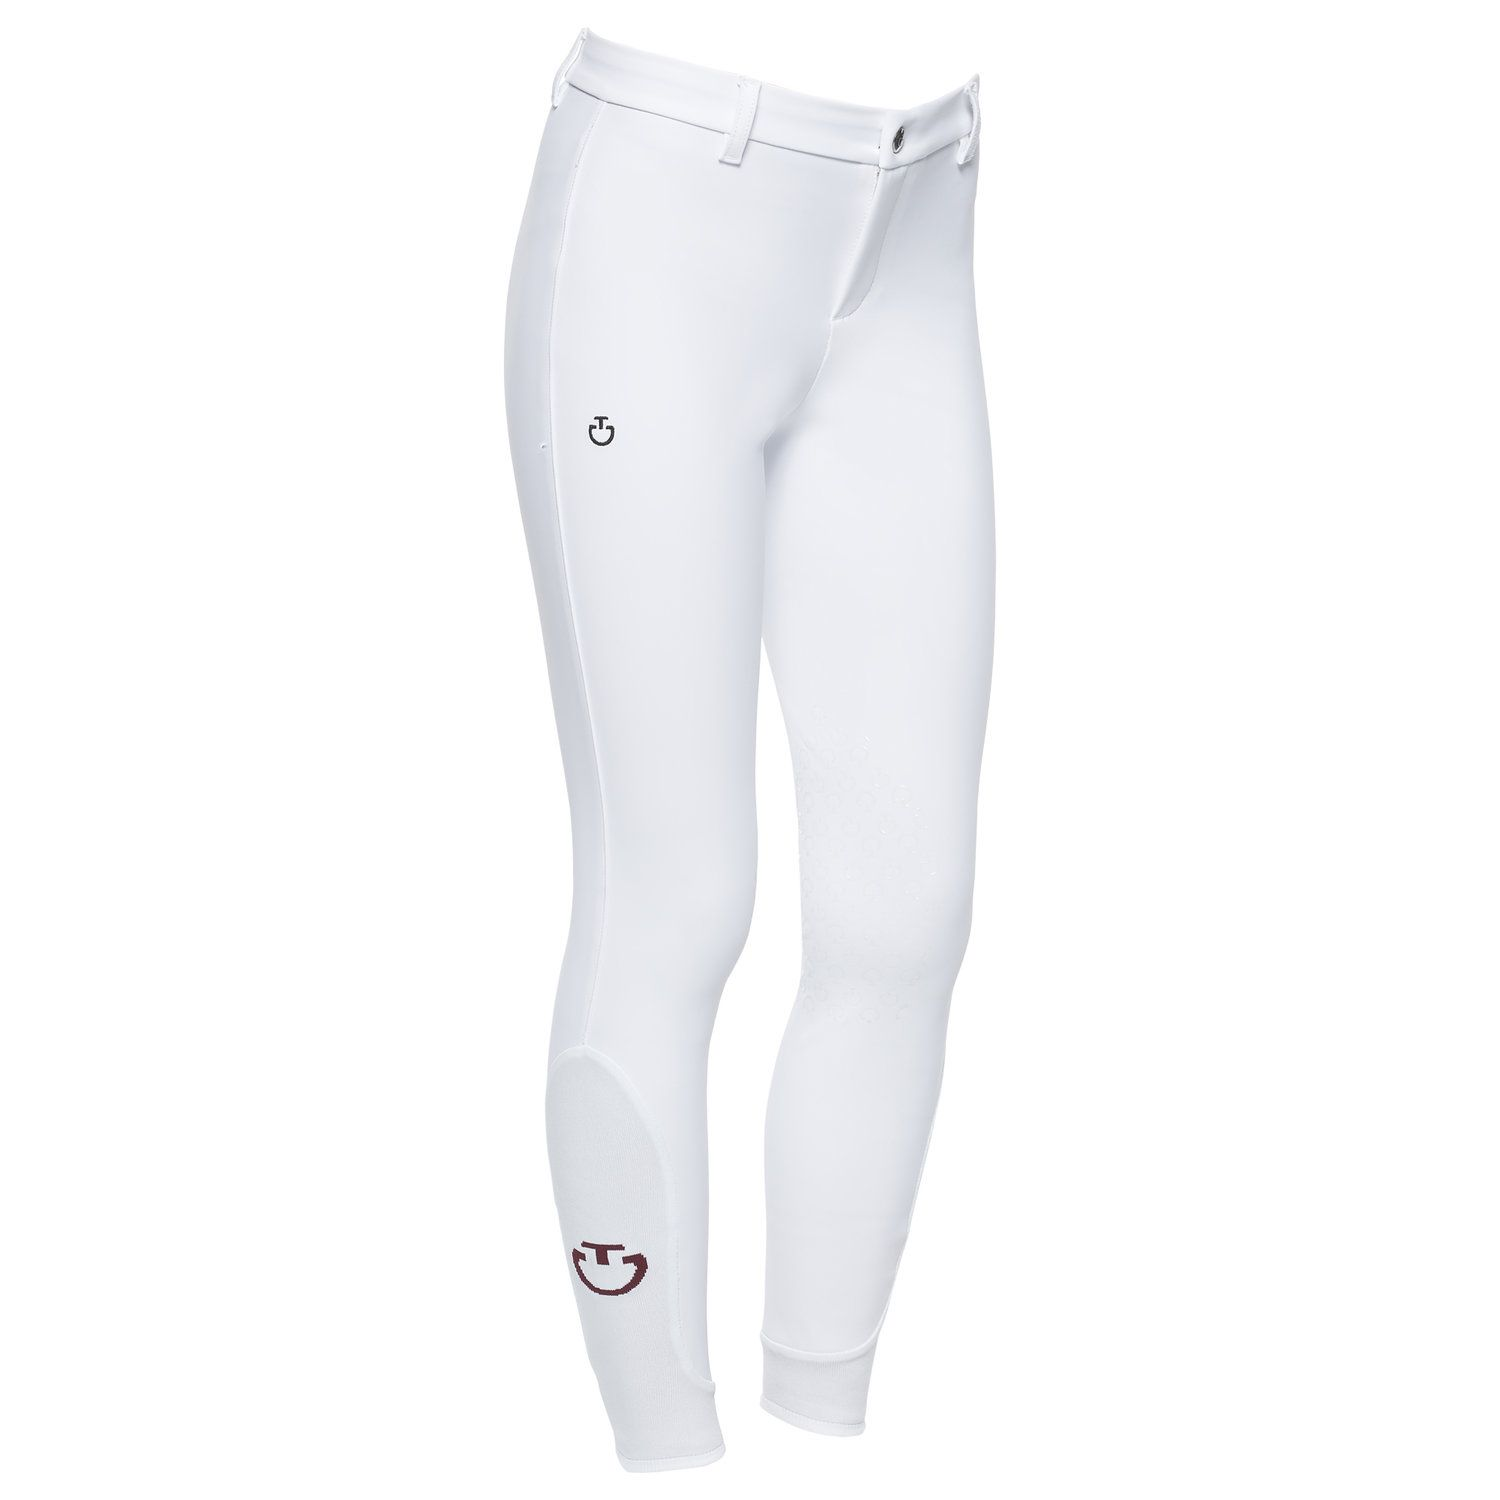 Kid's unisex riding breeches